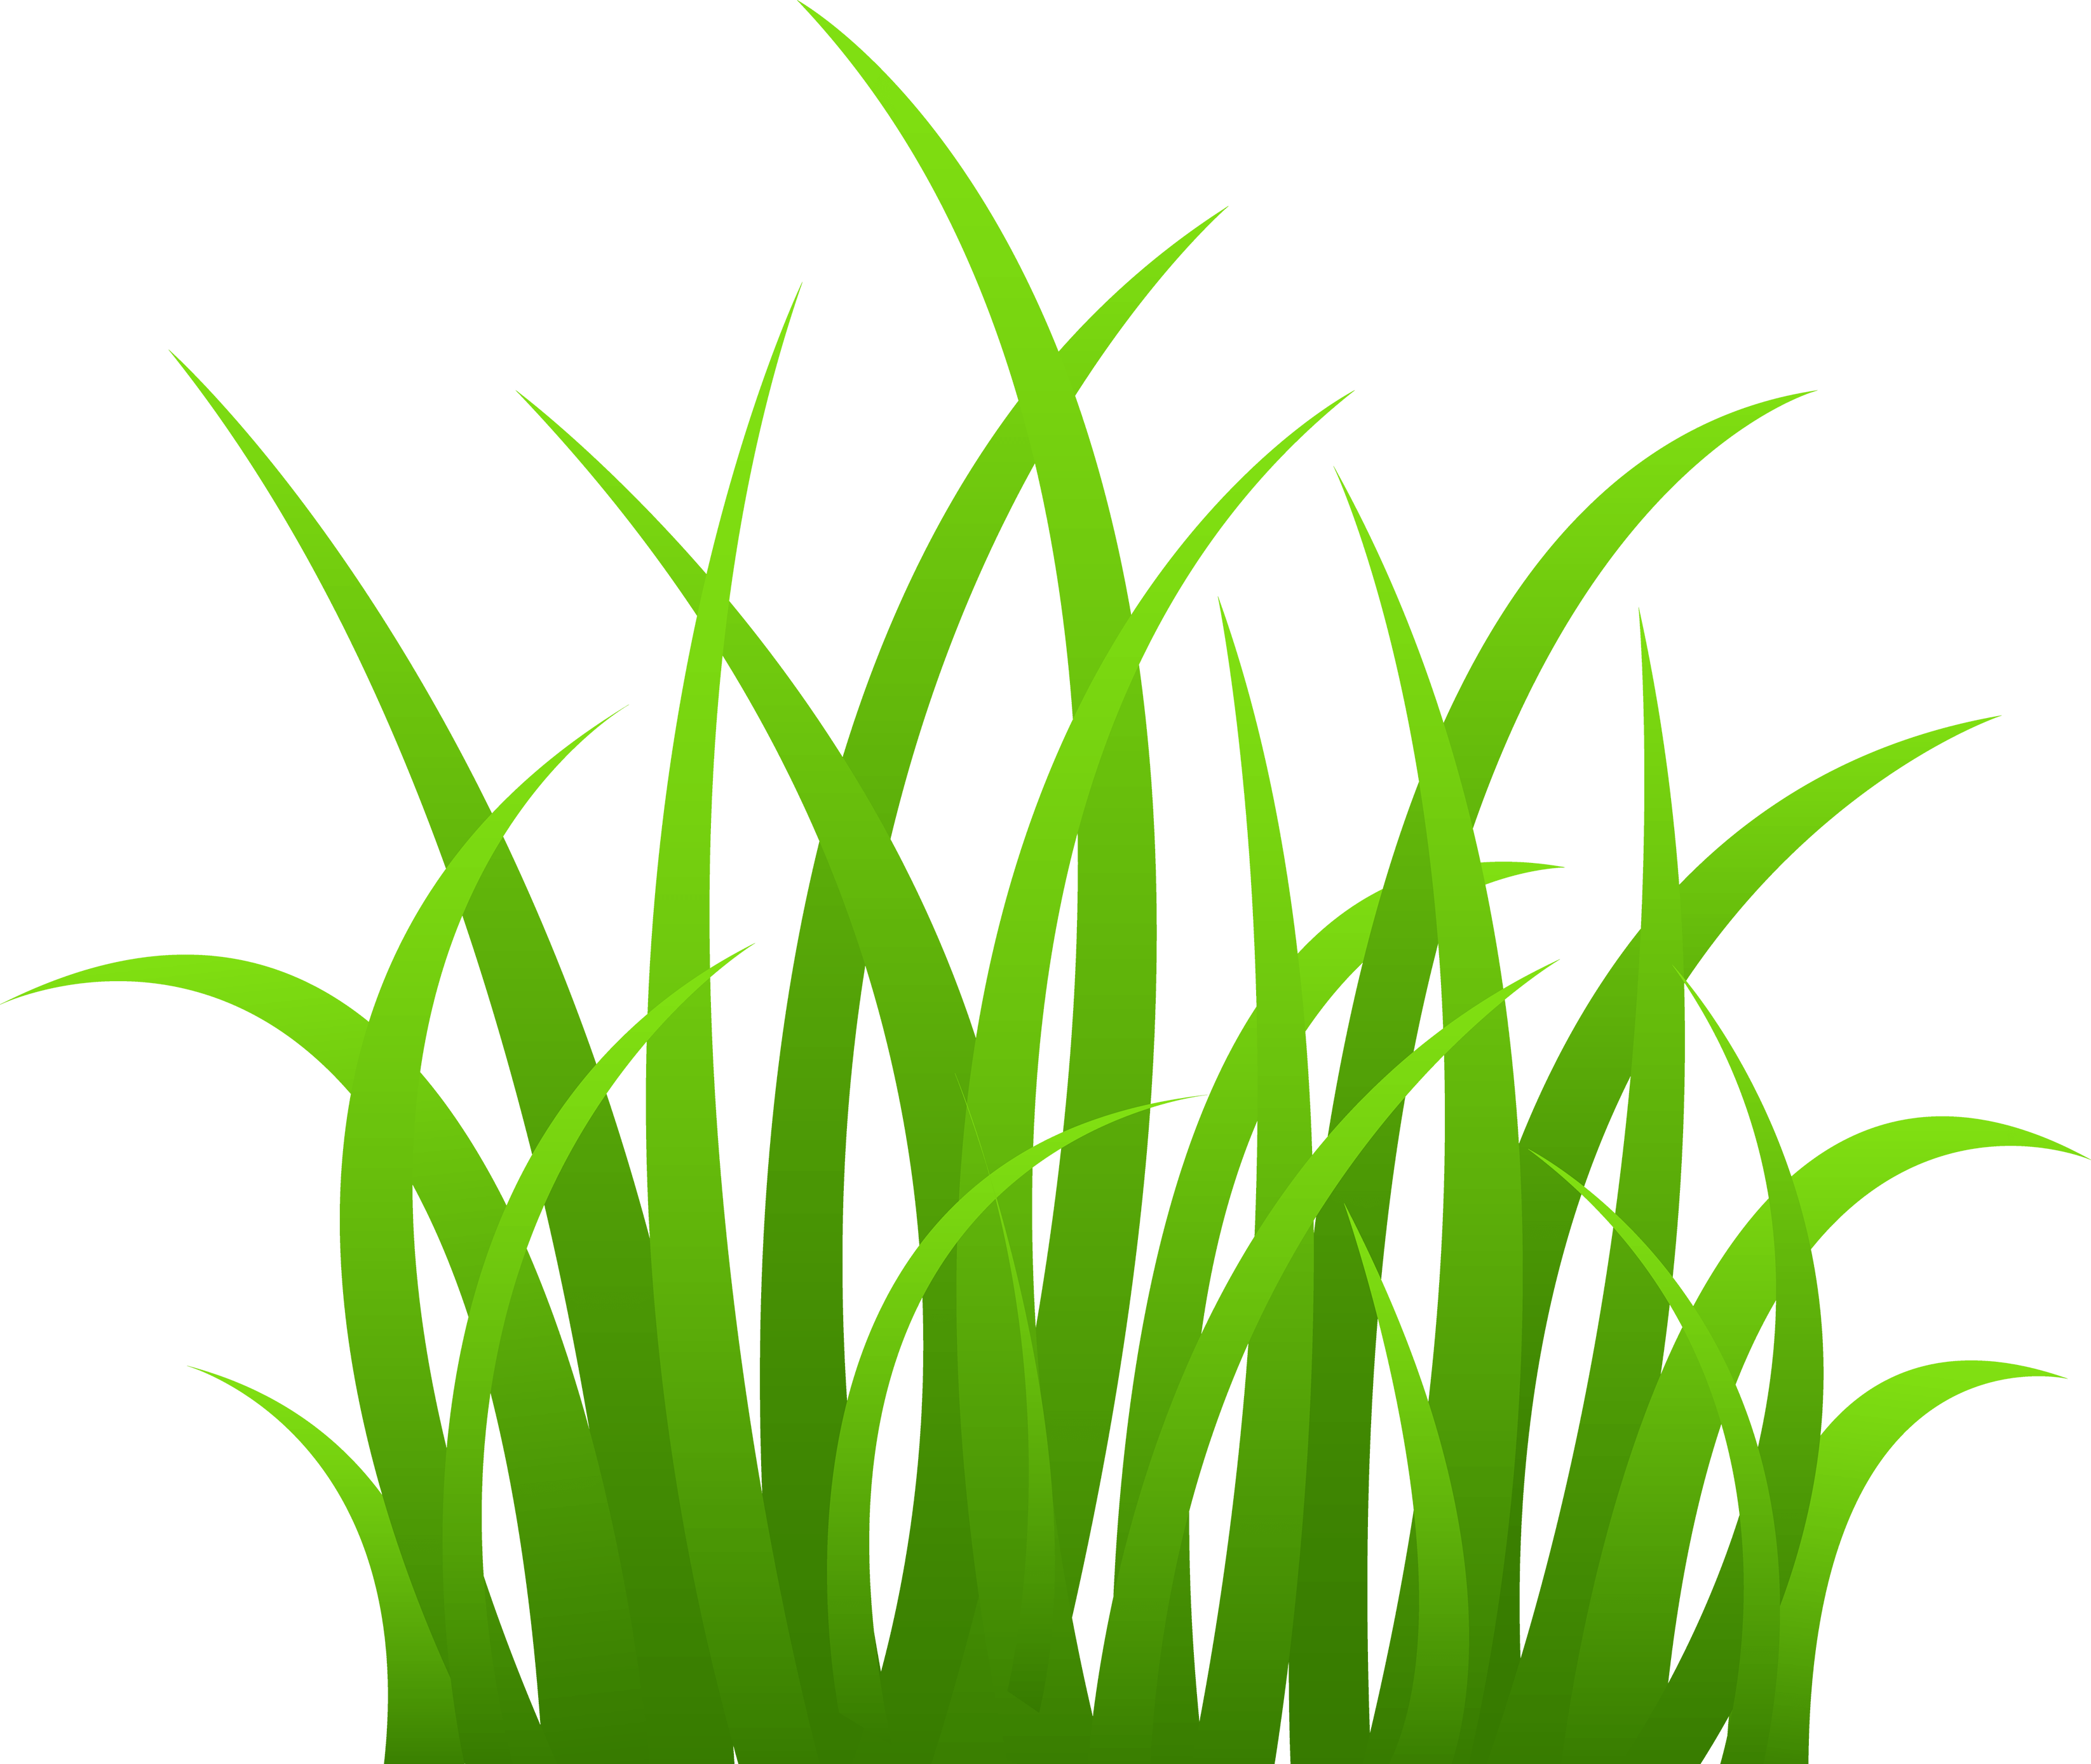 24 earphone png free cliparts that you can download to you computer - Grass Png Image Green Grass Png Picture Png Image